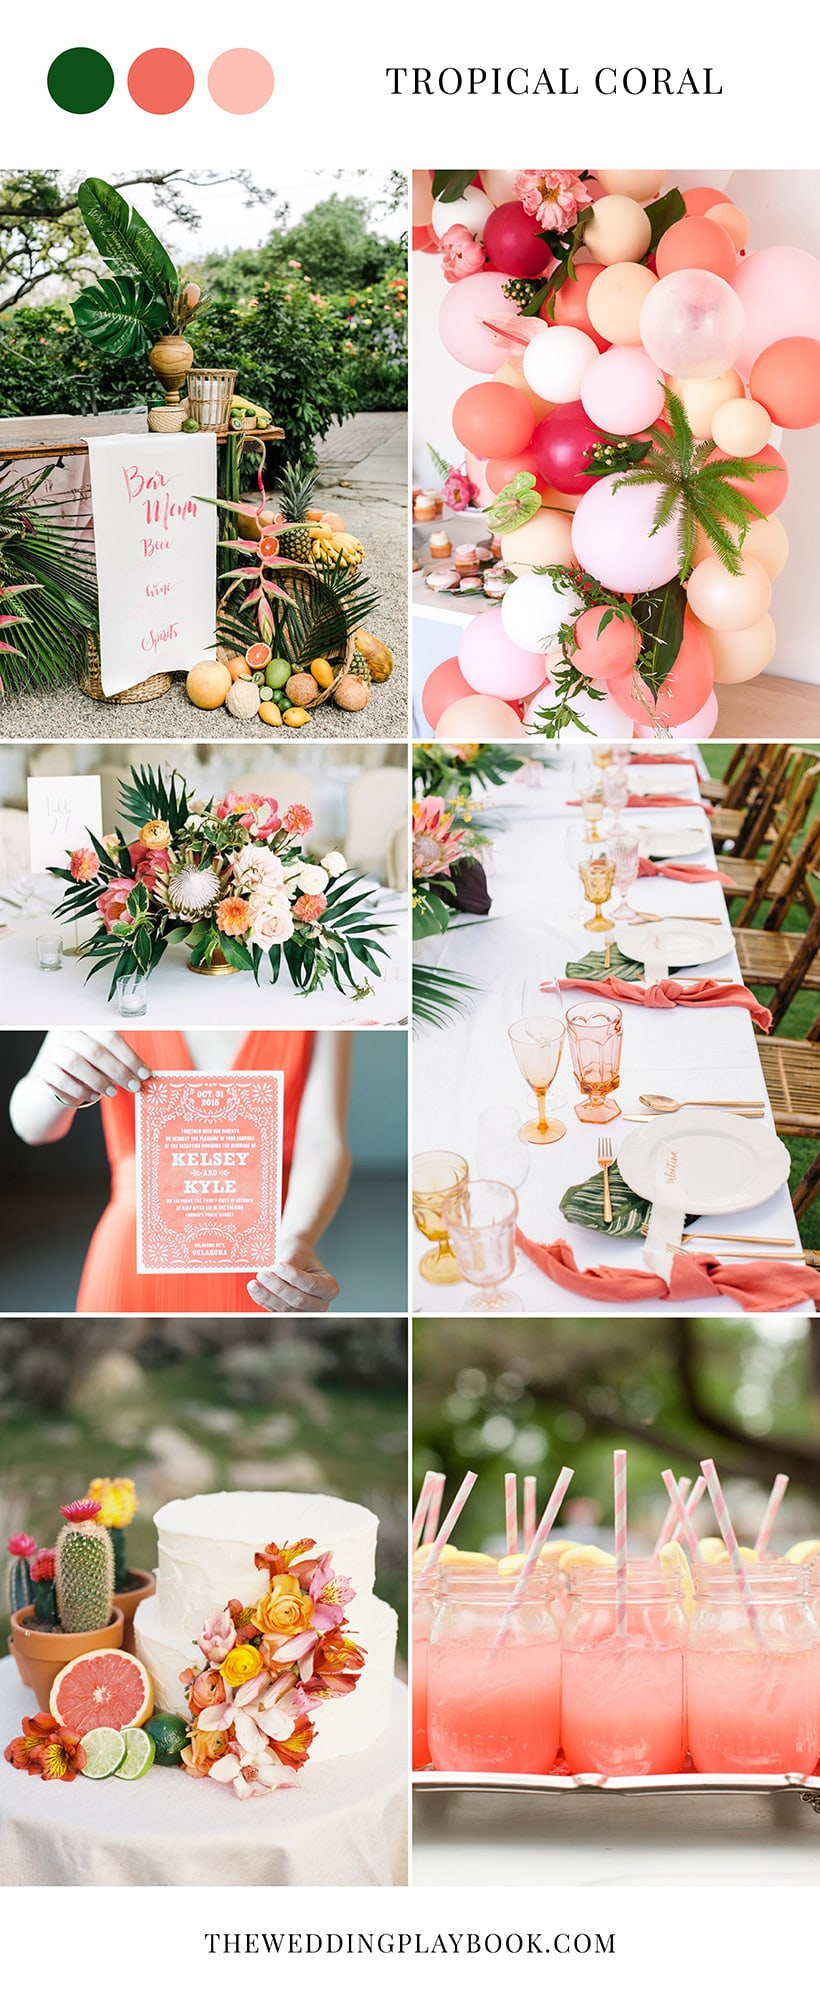 Tropical Coral Wedding Inspiration